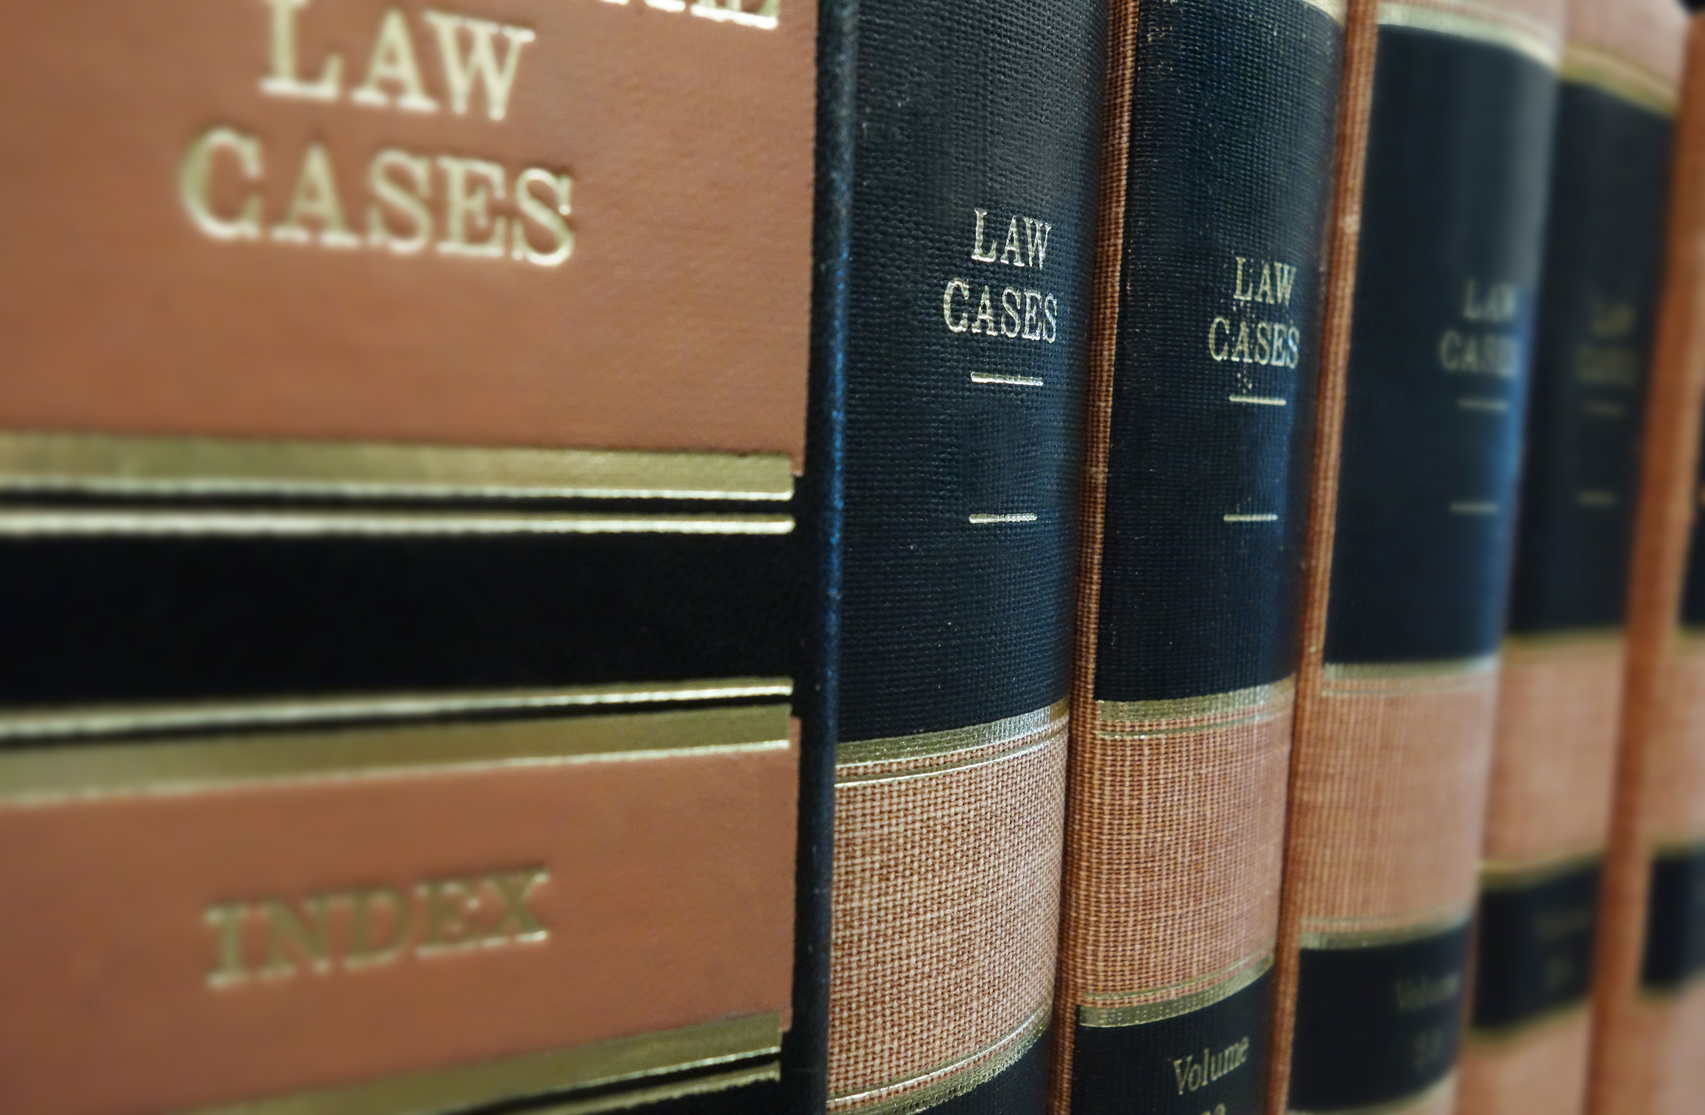 A. Alene Anderson Law Offices image 1